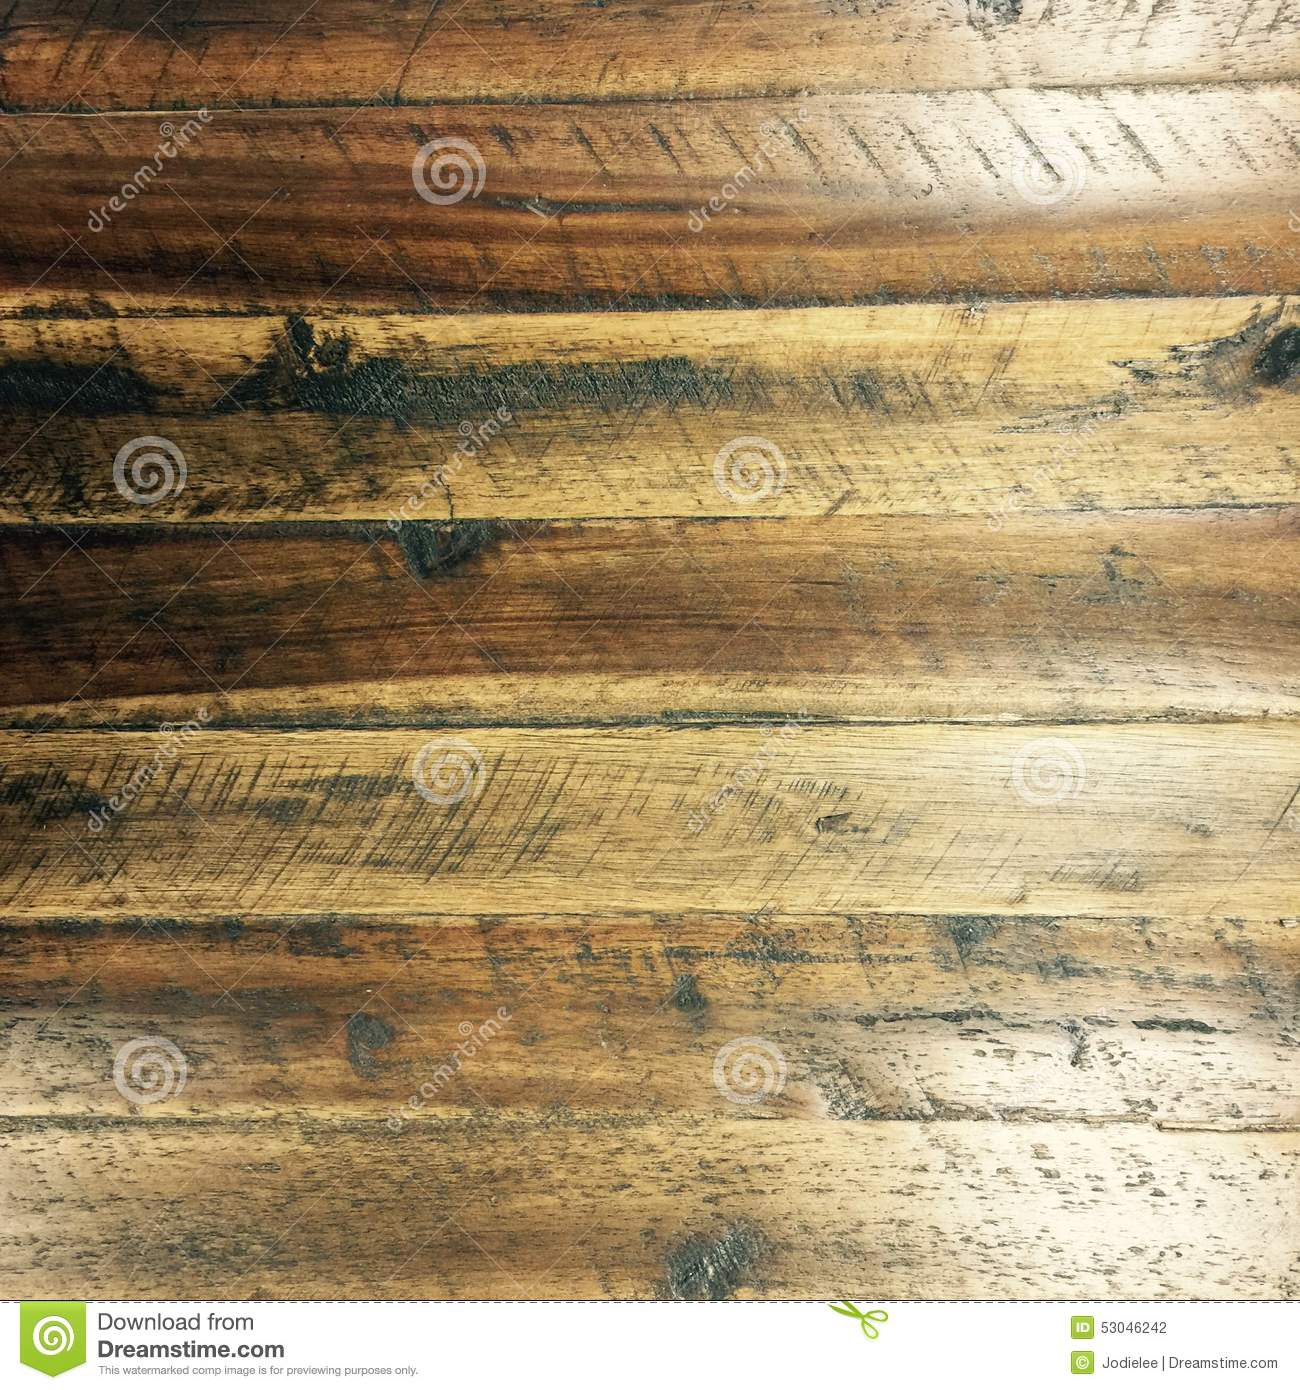 Brown Grungy Distressed Wooden Flooring Texture With White